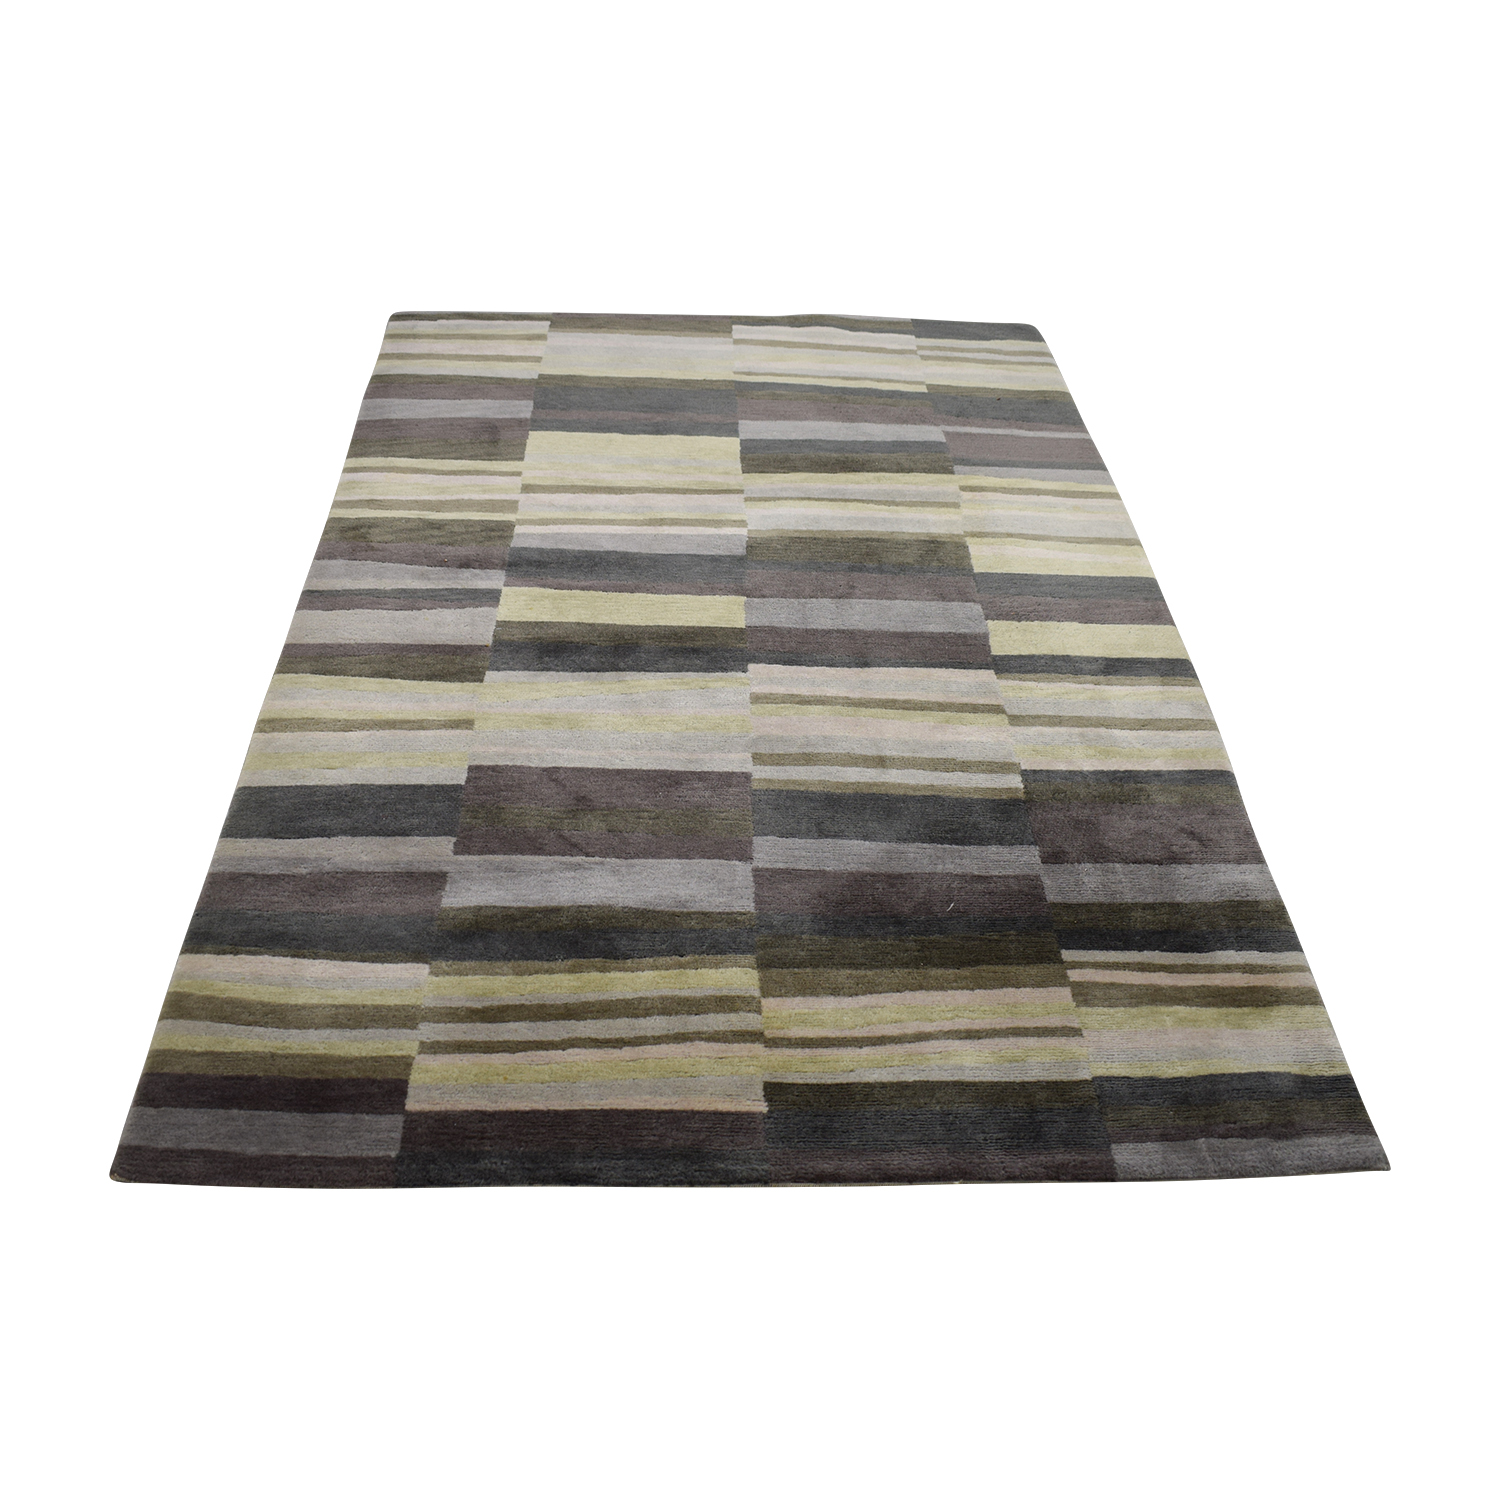 shop Room & Board Multi-Colored Grey Rug Room & Board Rugs